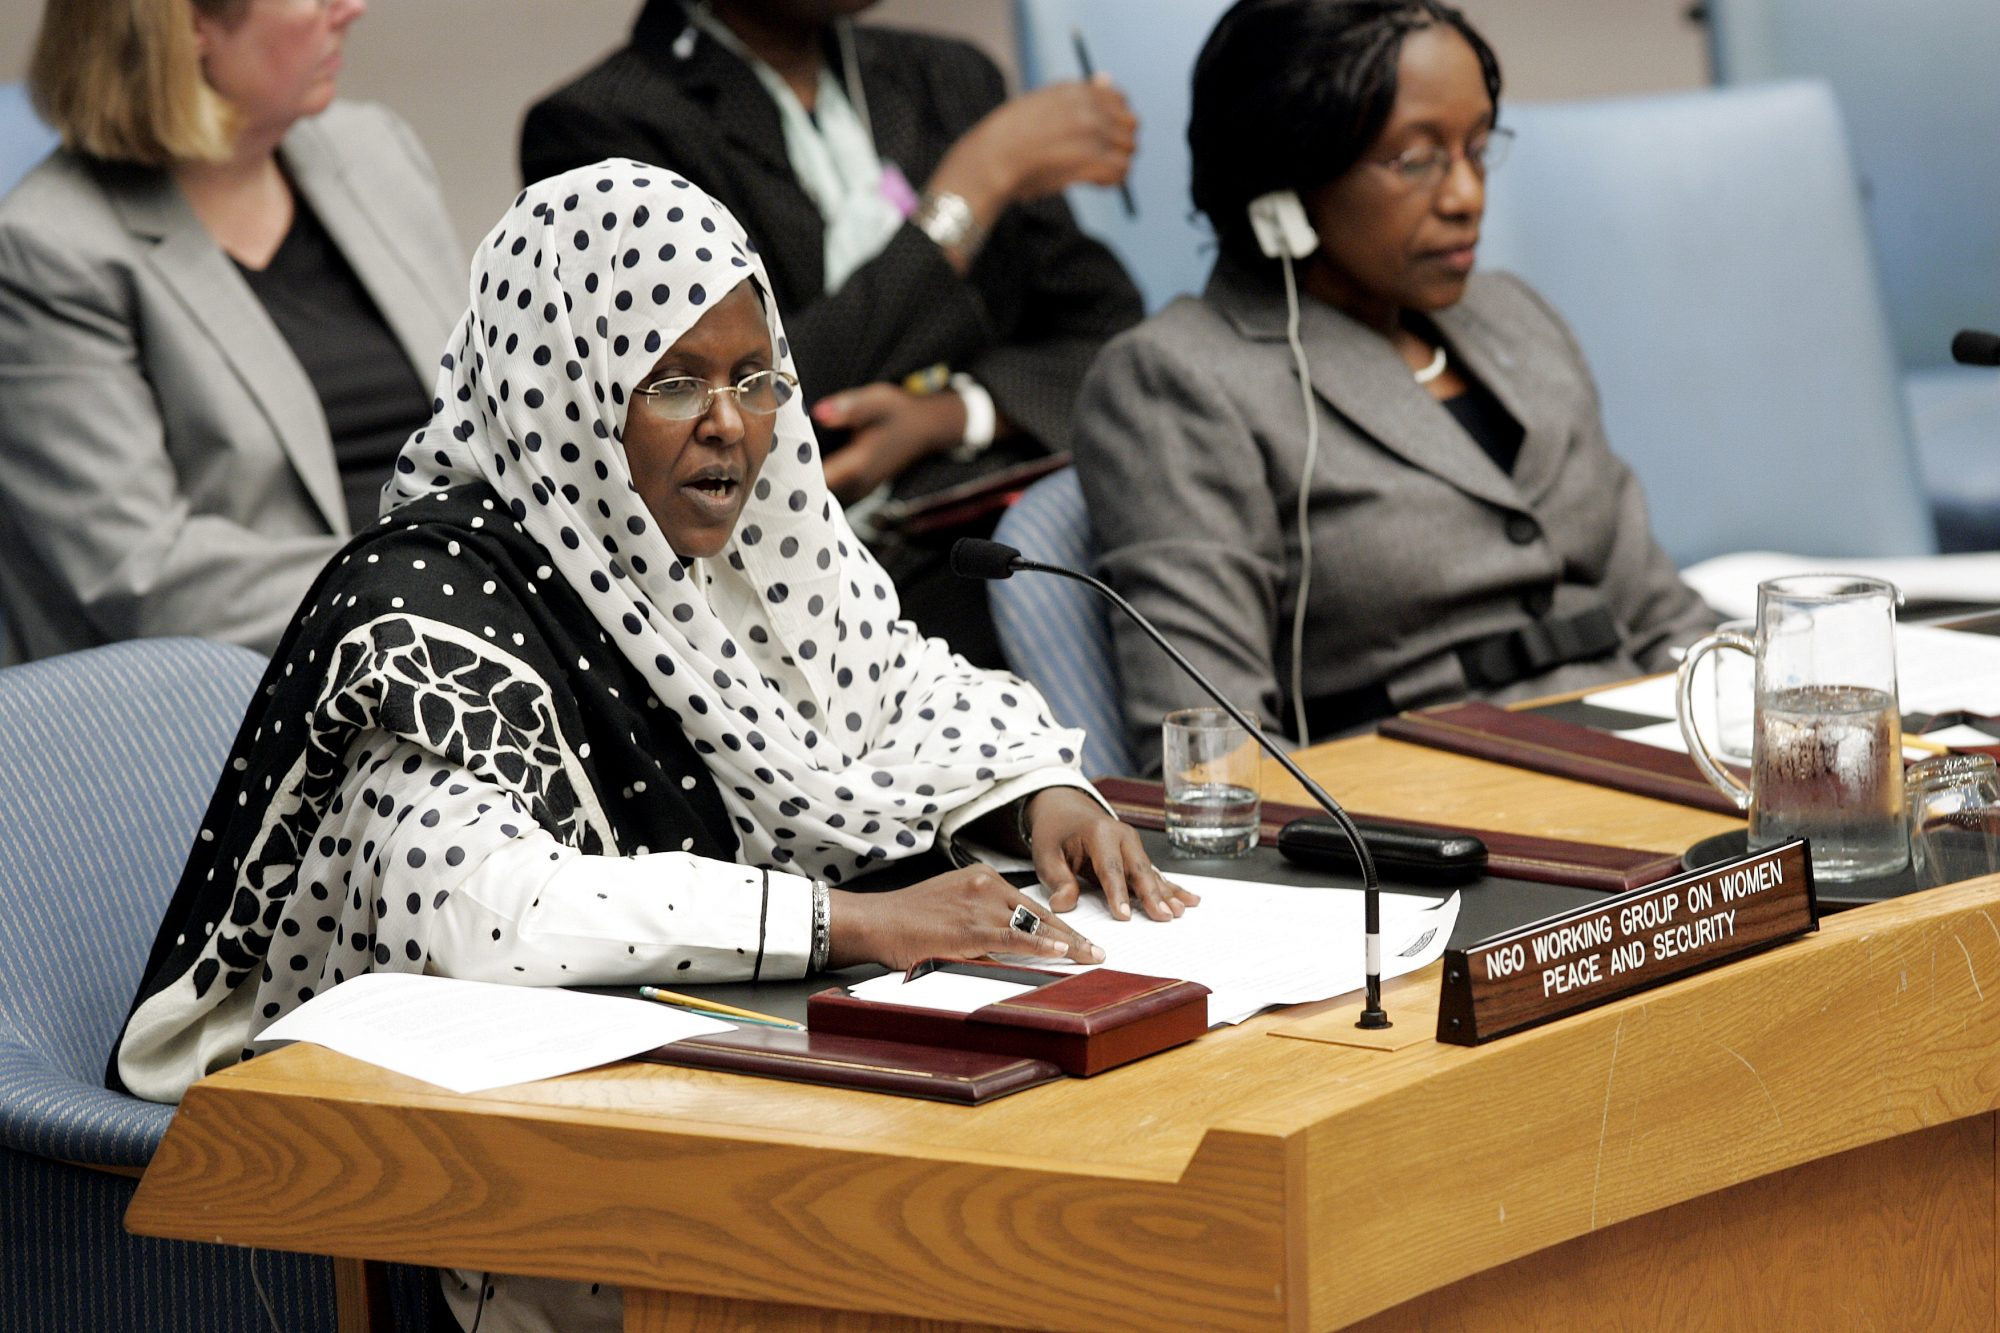 Statement to the Security Council by Ms. Asha Hagi Elmi Amin on SC Resolution 1325